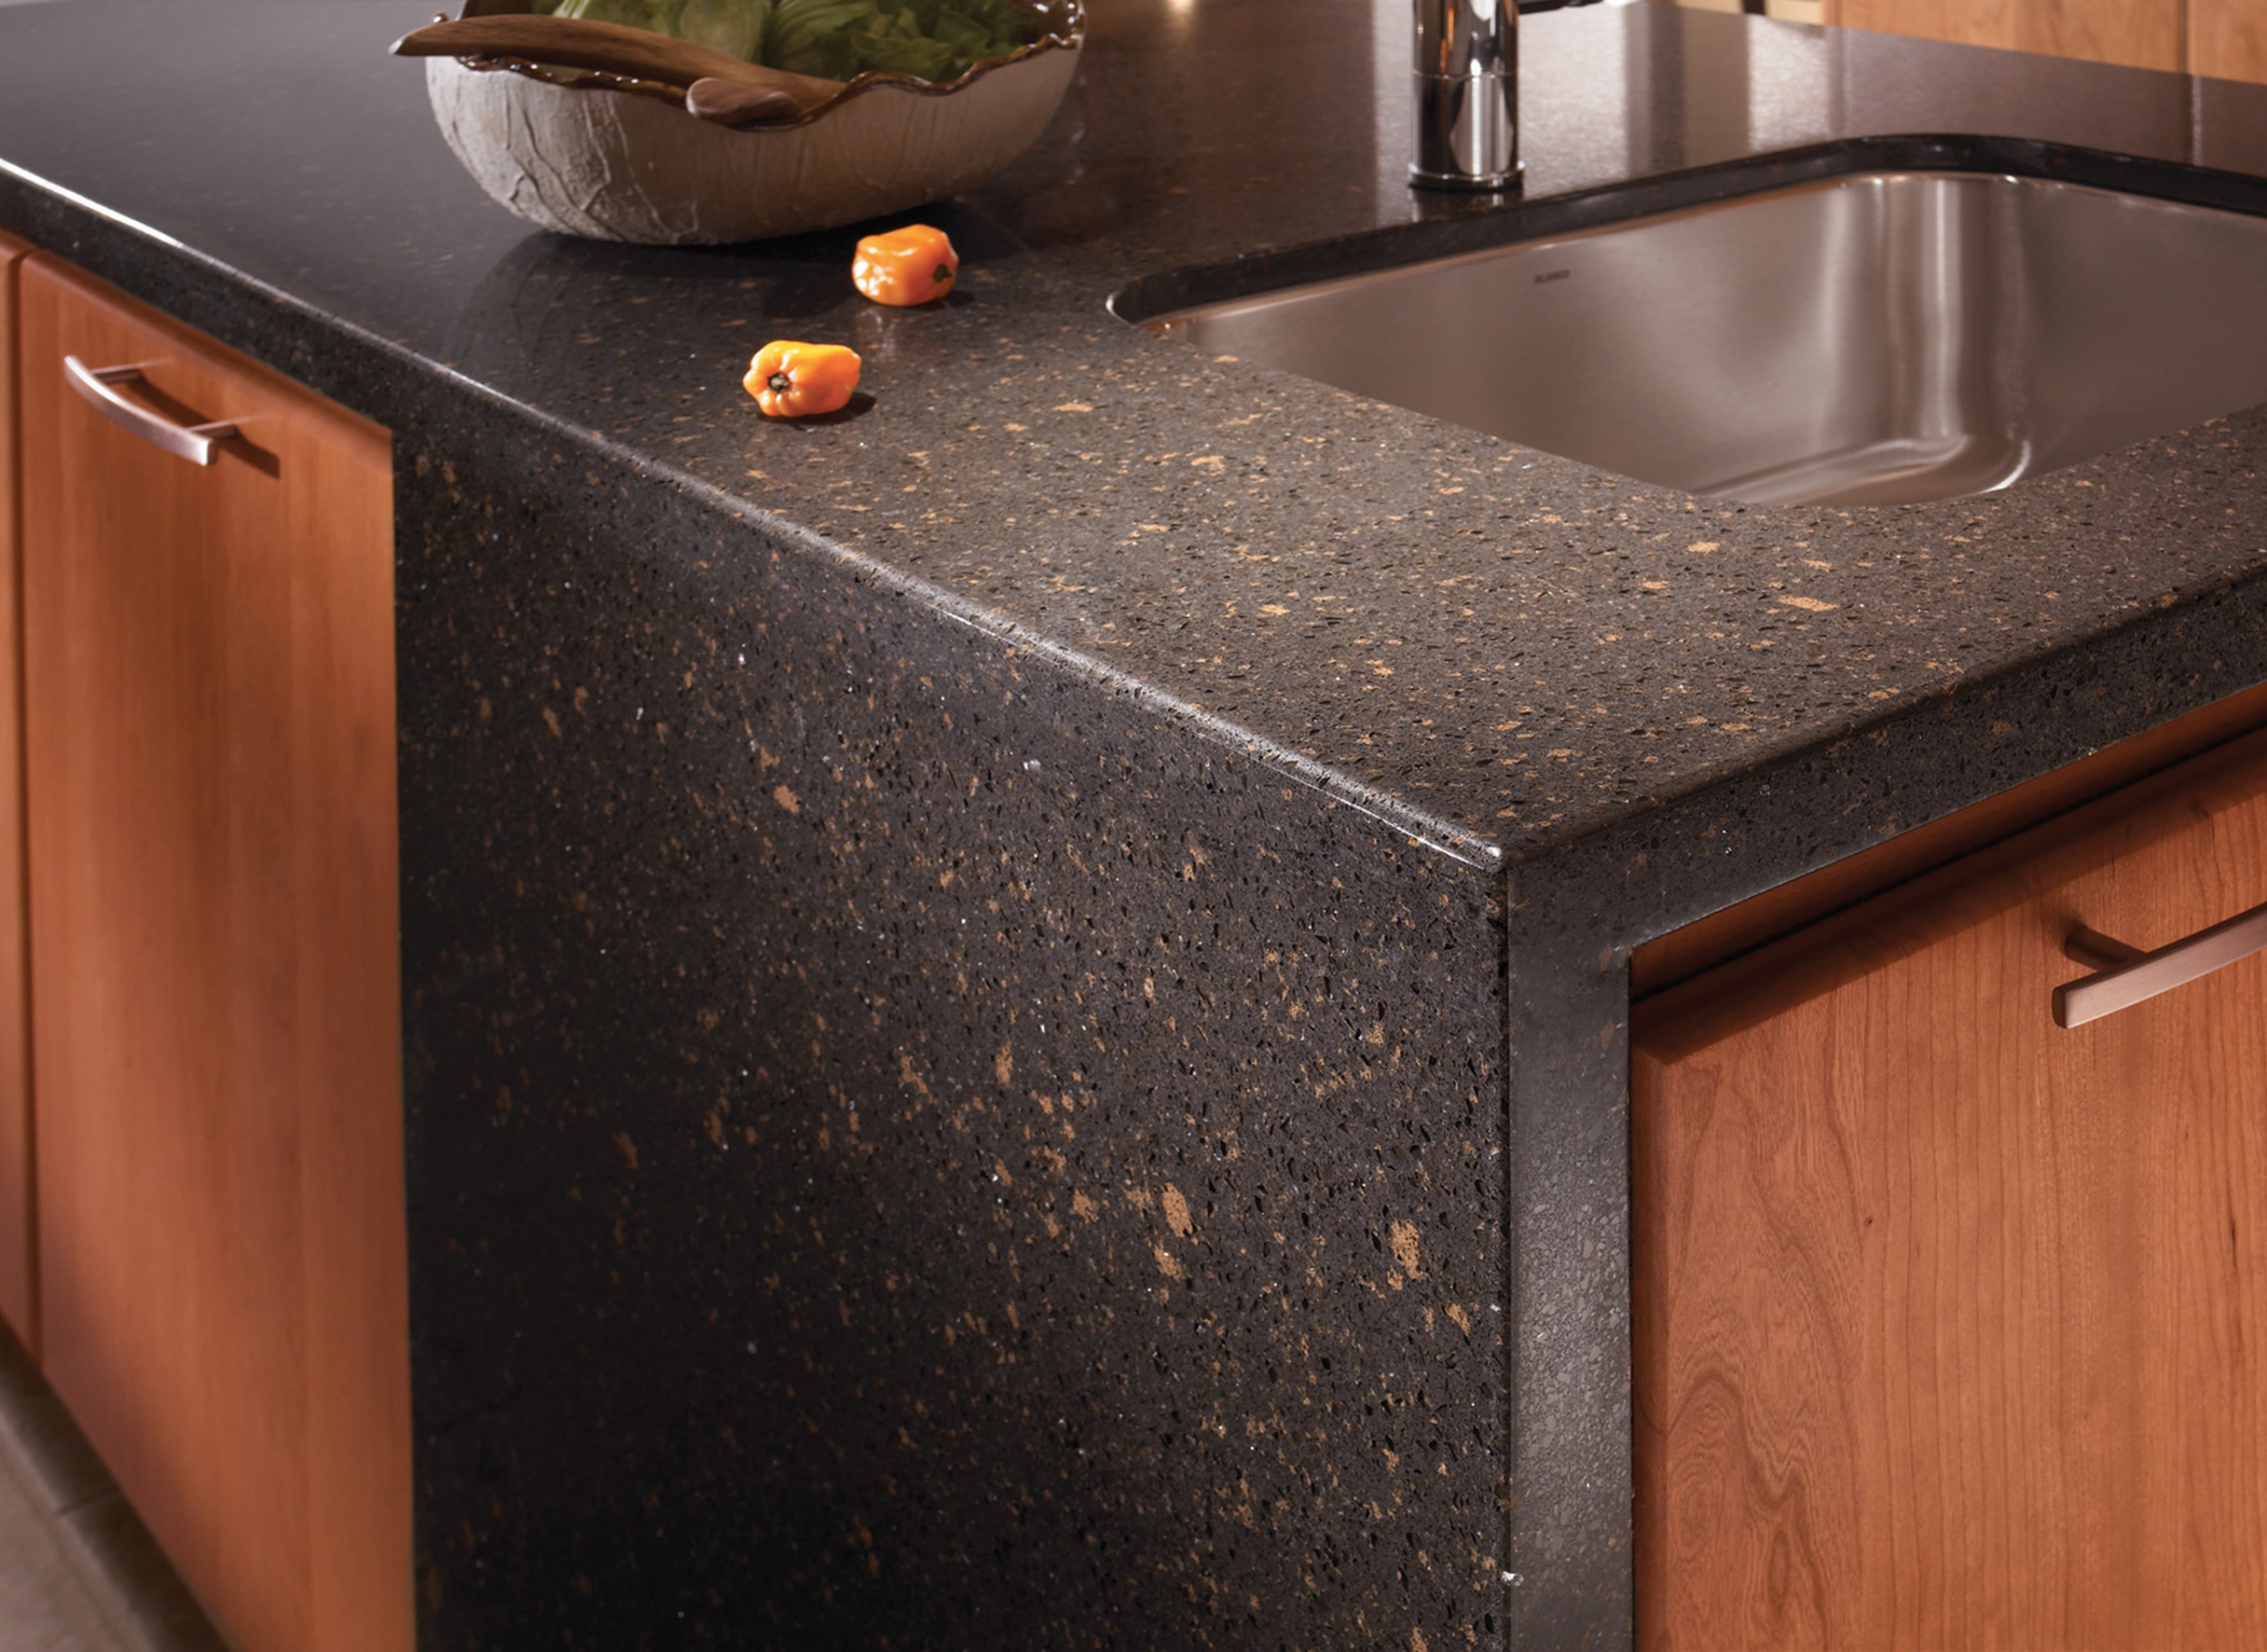 Cosentino Showcases New Silestone Suede Finish At The